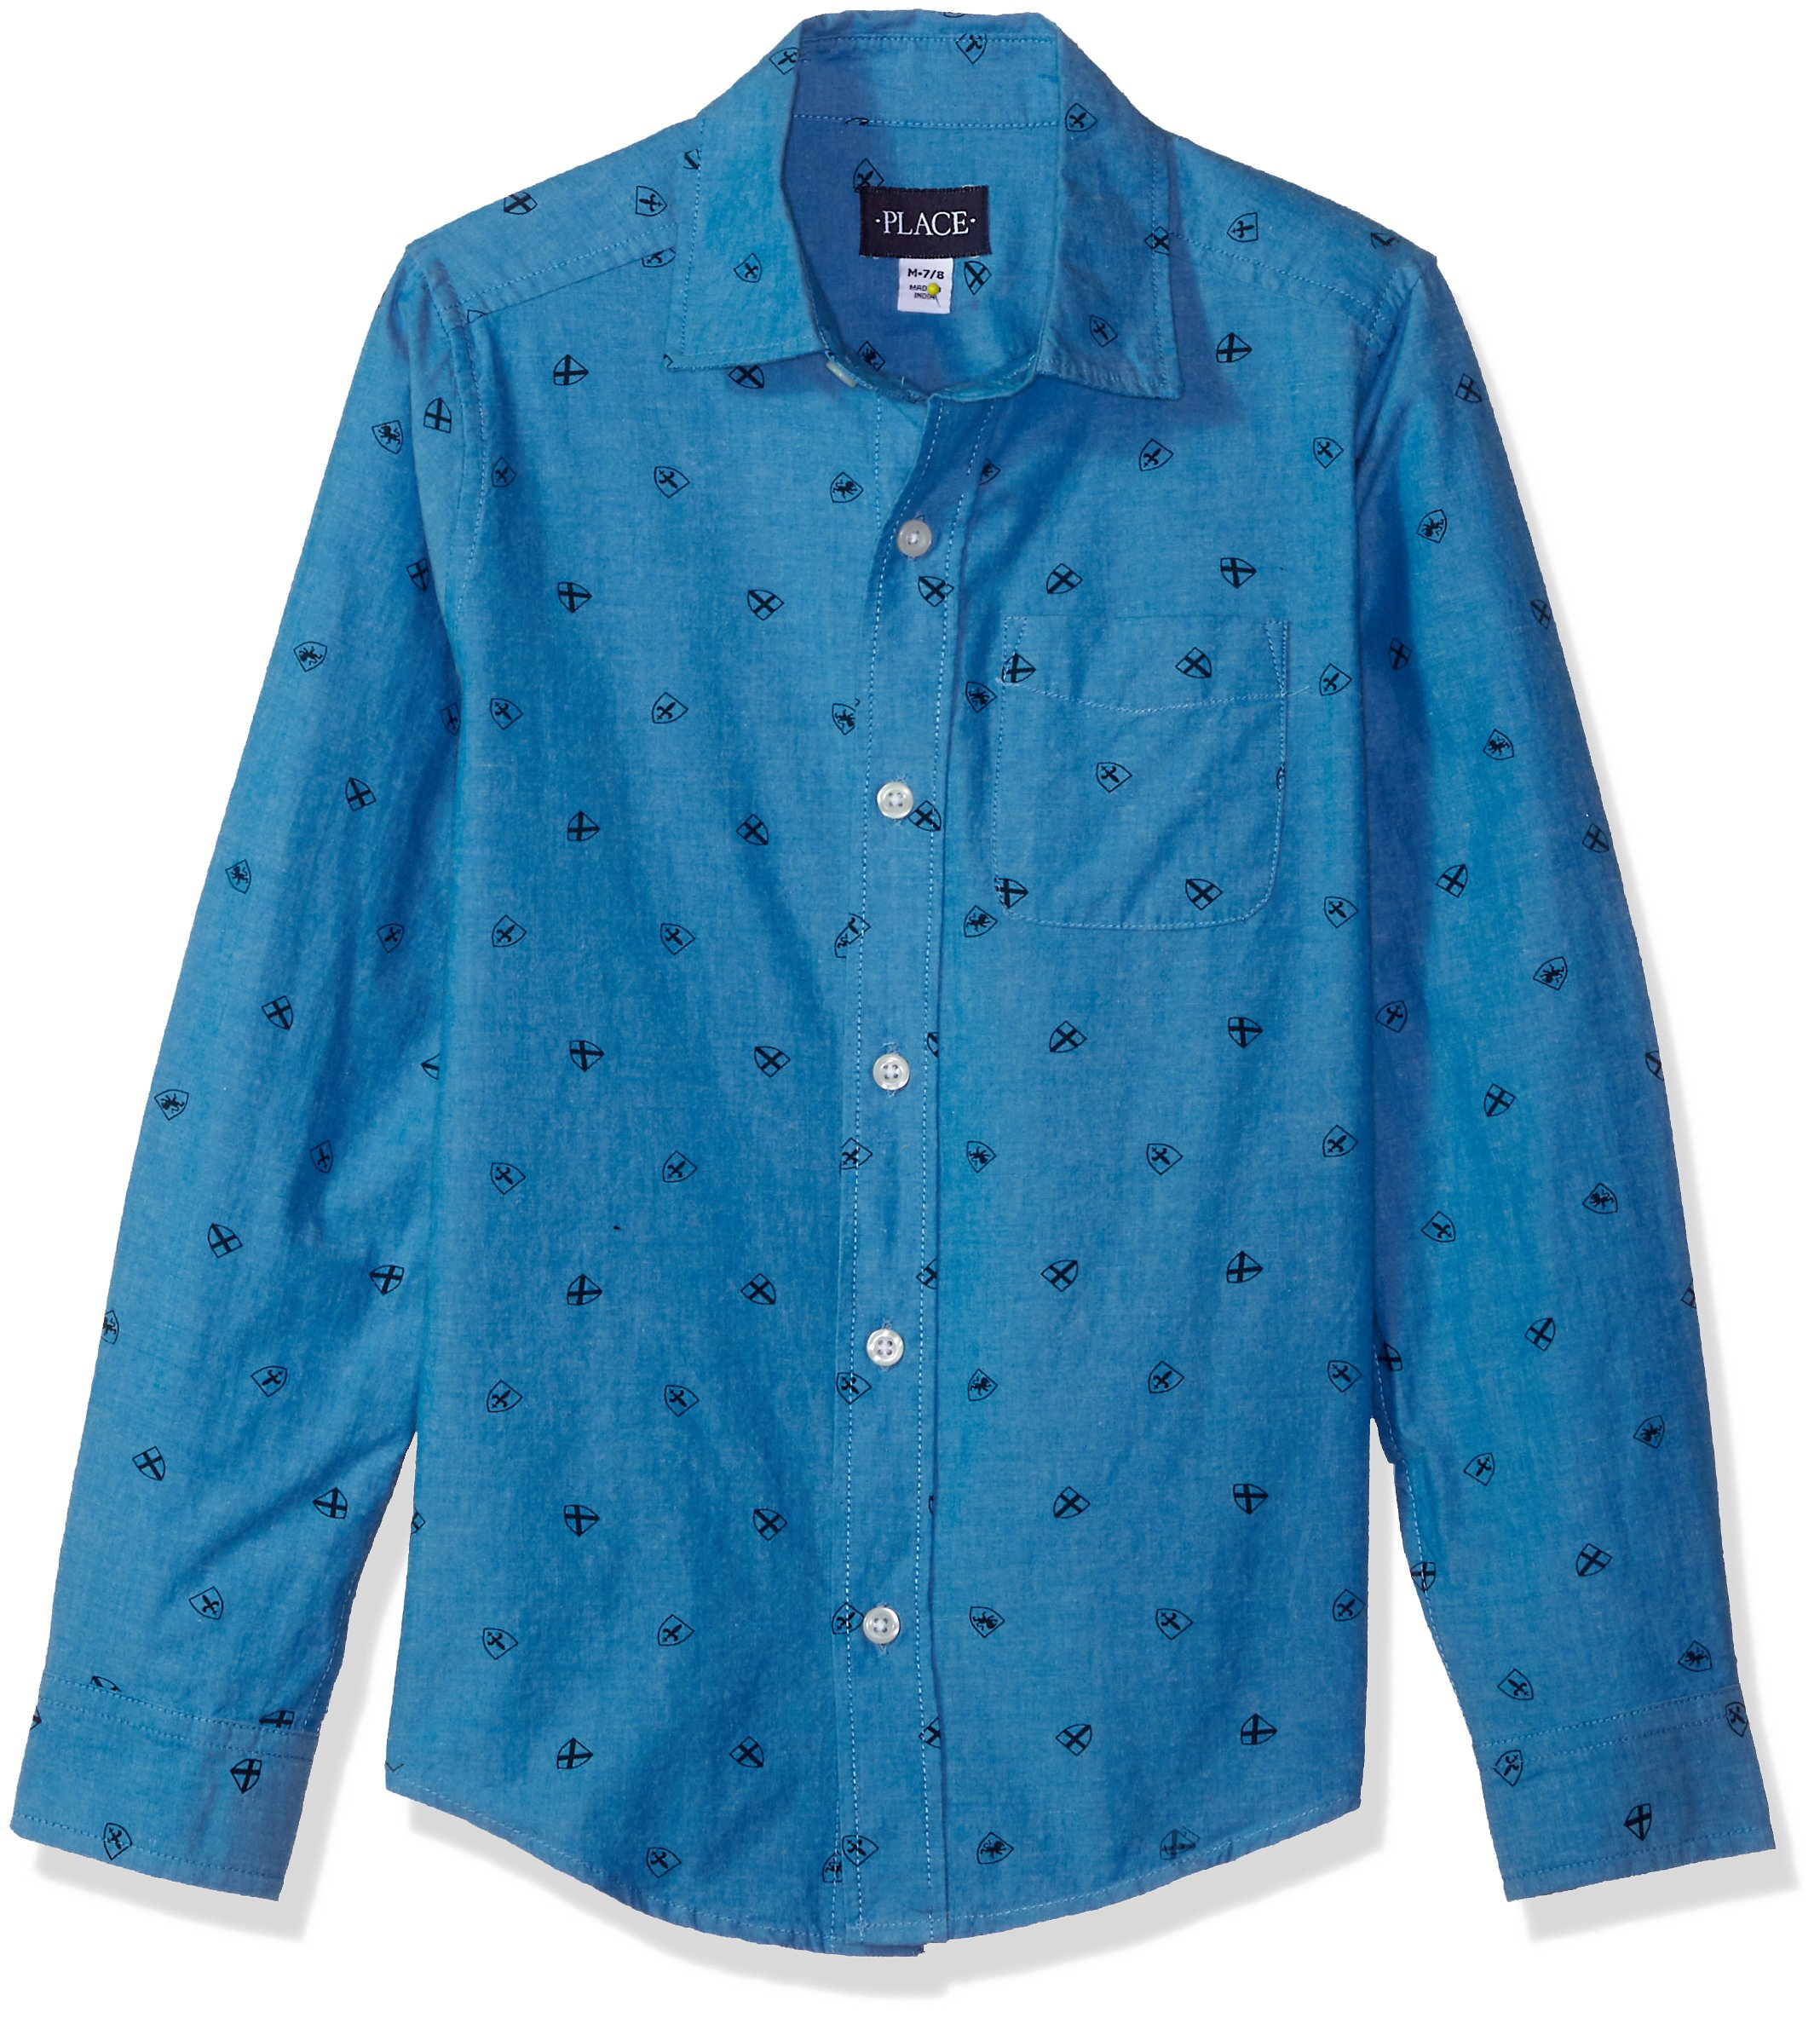 The Children's Place Big Boys' Blue Poplin Printed Top, Sailors Sea 88198, L (10/12)